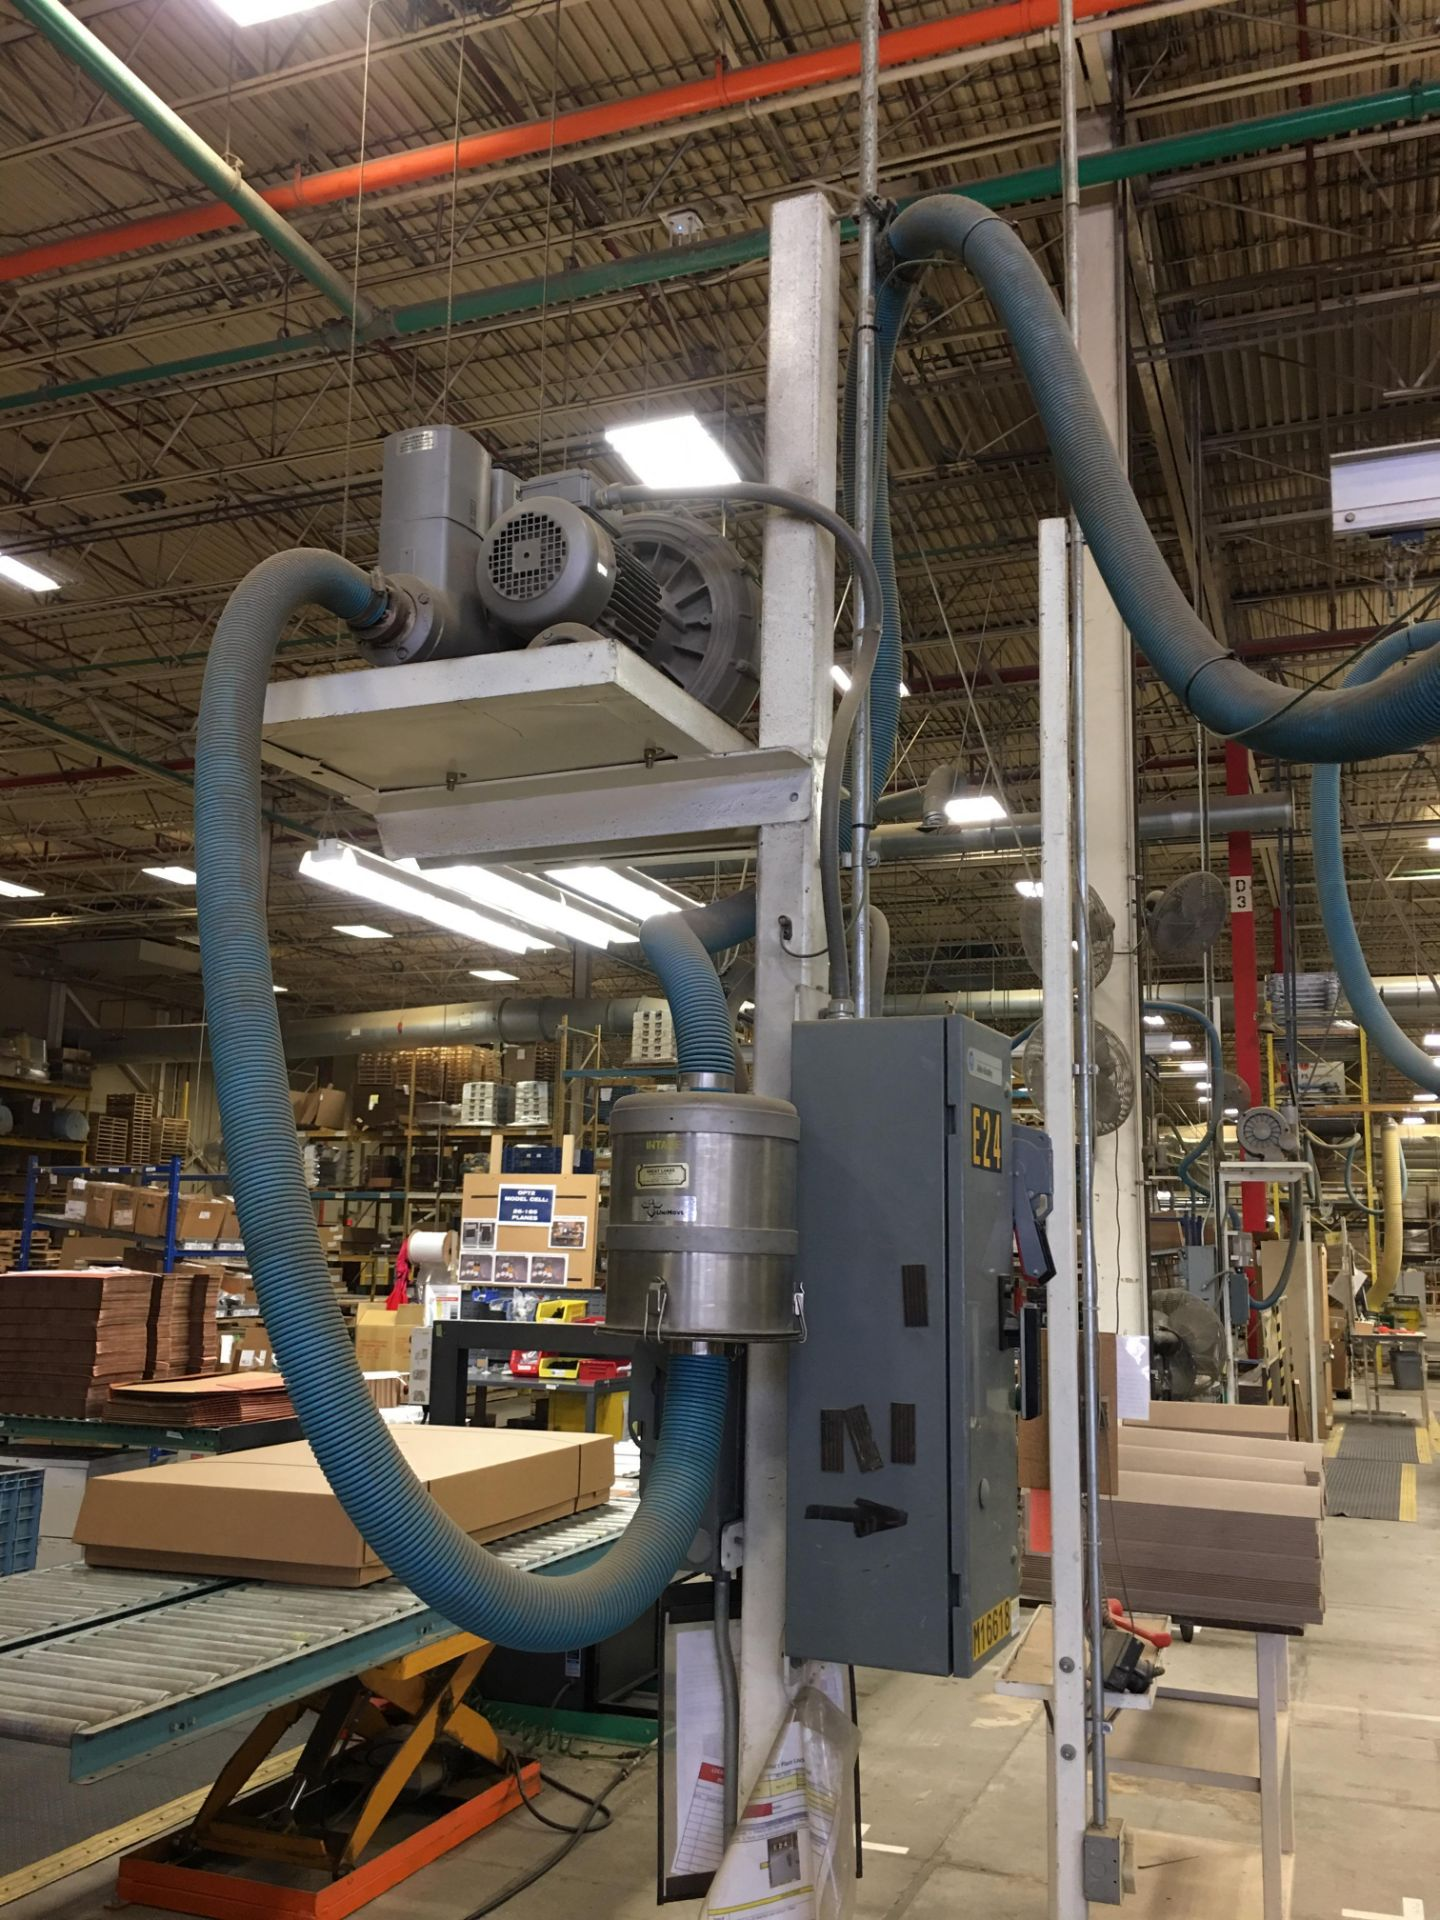 VACUUM LIFTER WITH PUMP AND OVERHEAD GANTRY RAILS - Image 2 of 2